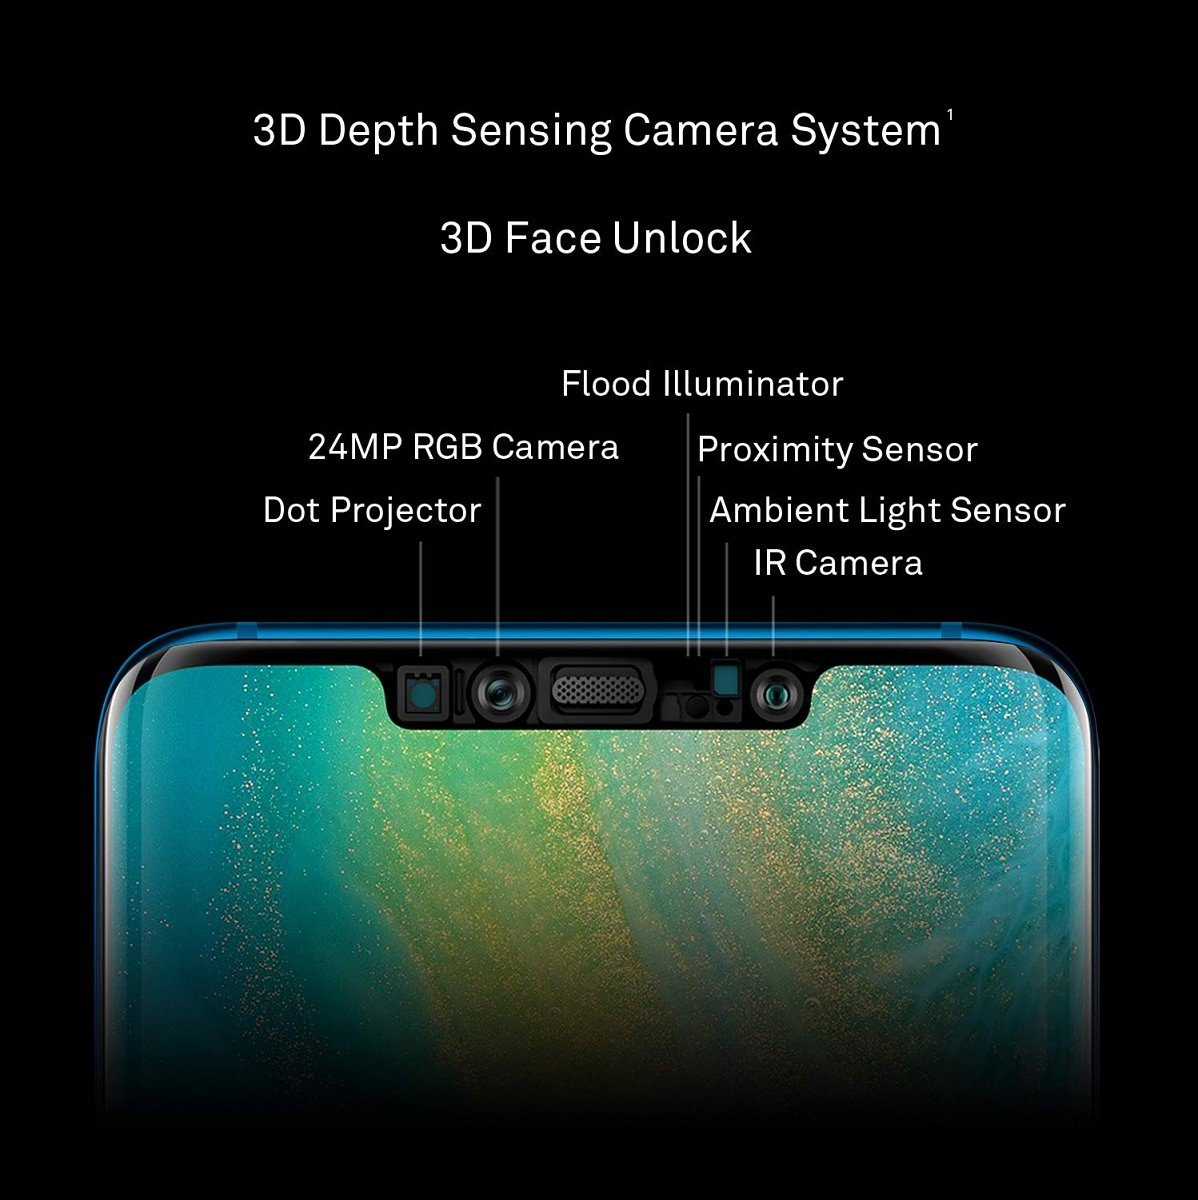 Huawei Mate 20 Pro update lets users add a second face for face unlock